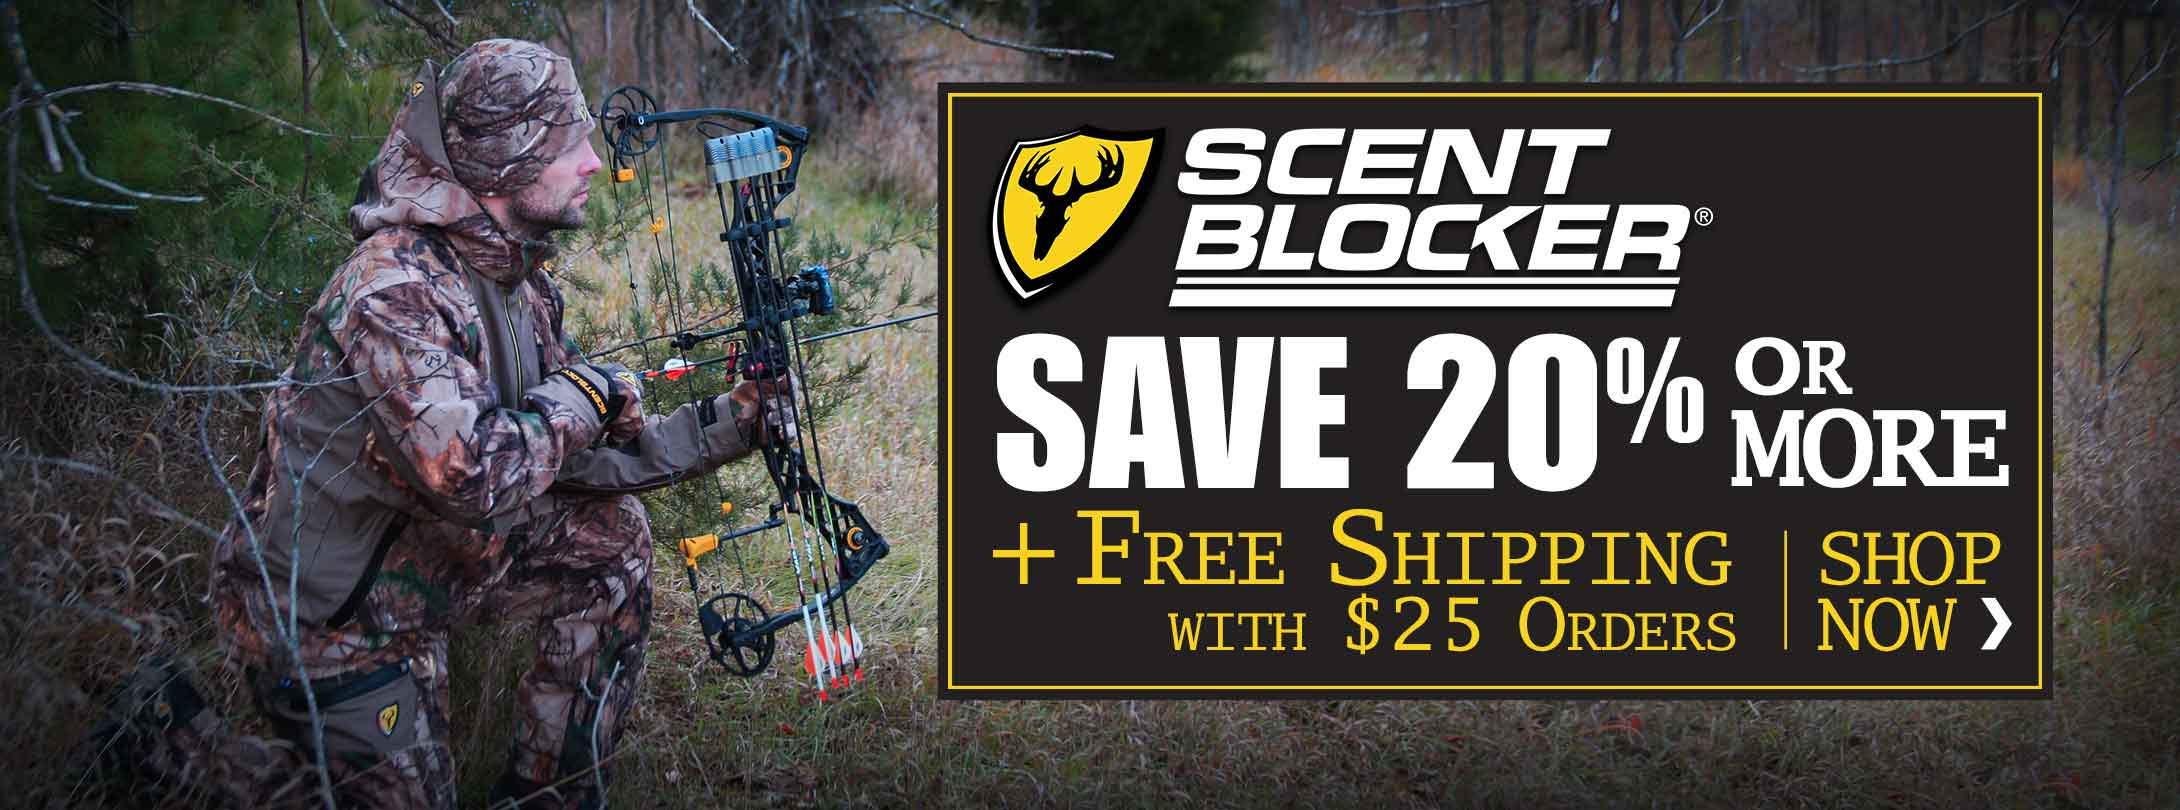 Save Over 20% + Free Shipping on ScentBlocker Jackets, Pants & More